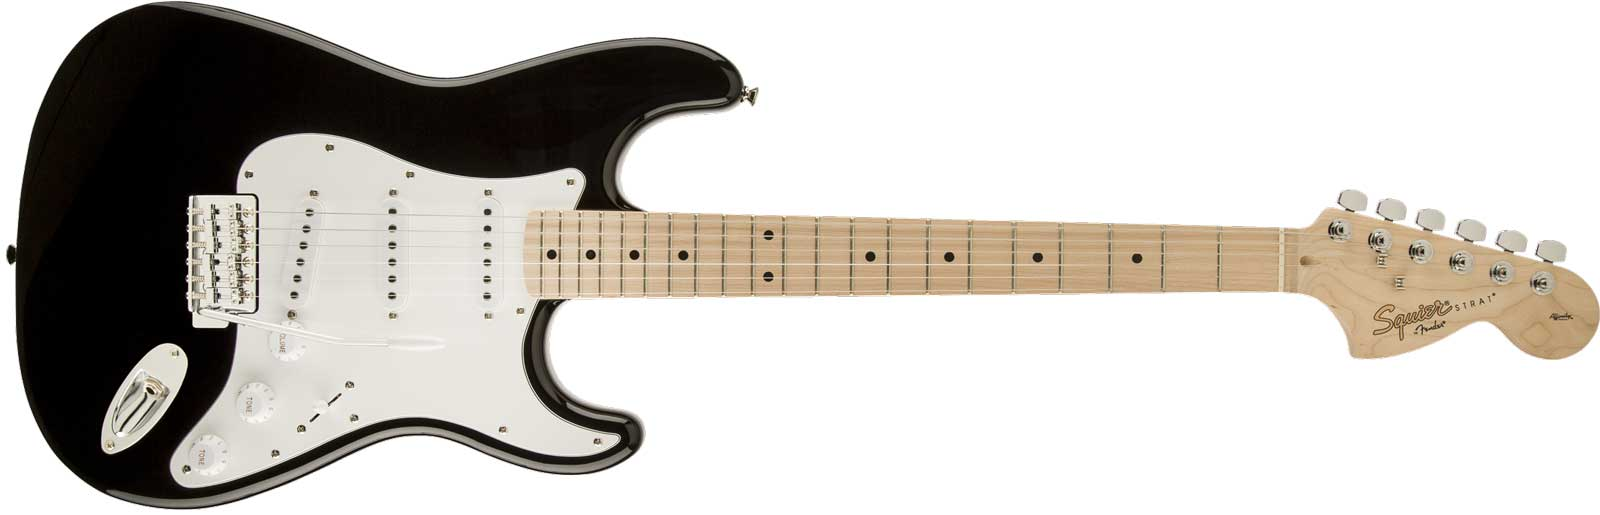 Squier Stratocaster Affinity MN Black